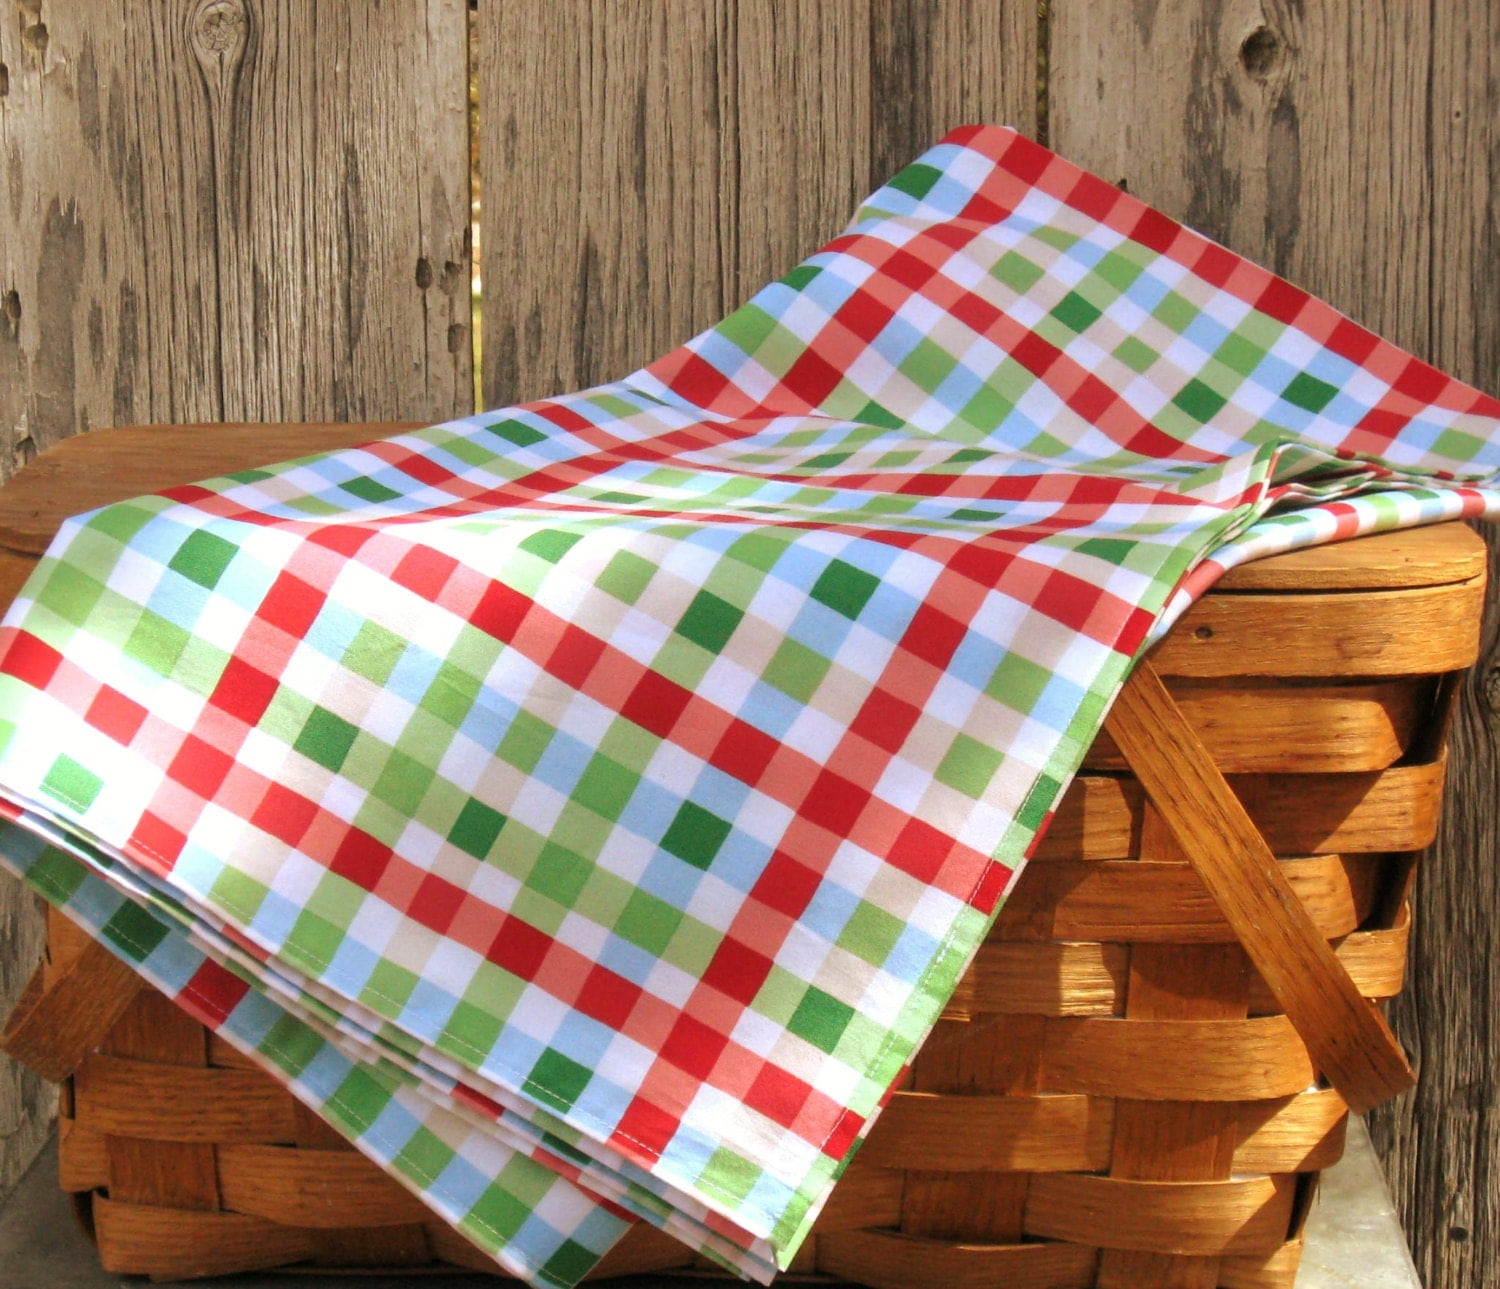 Square Tablecloth Gingham Plaid Tablecloth In Red Green Blue